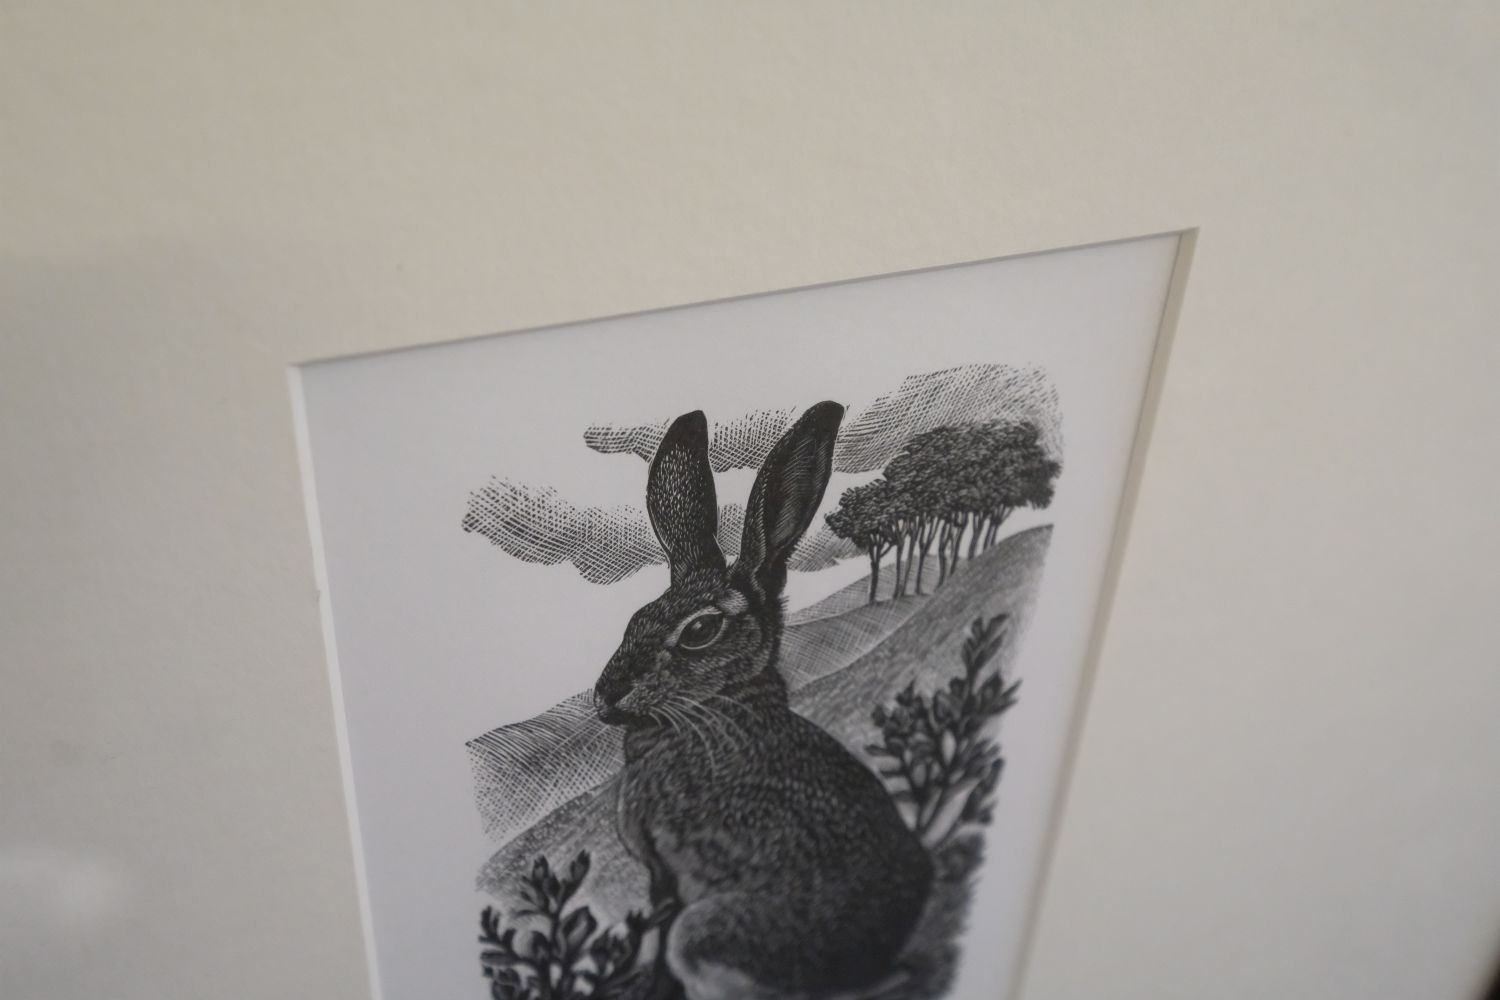 ARR * § Tunnicliffe (Charles Frederick1901-1978). Sitting Hare, 1949 - Image 3 of 5